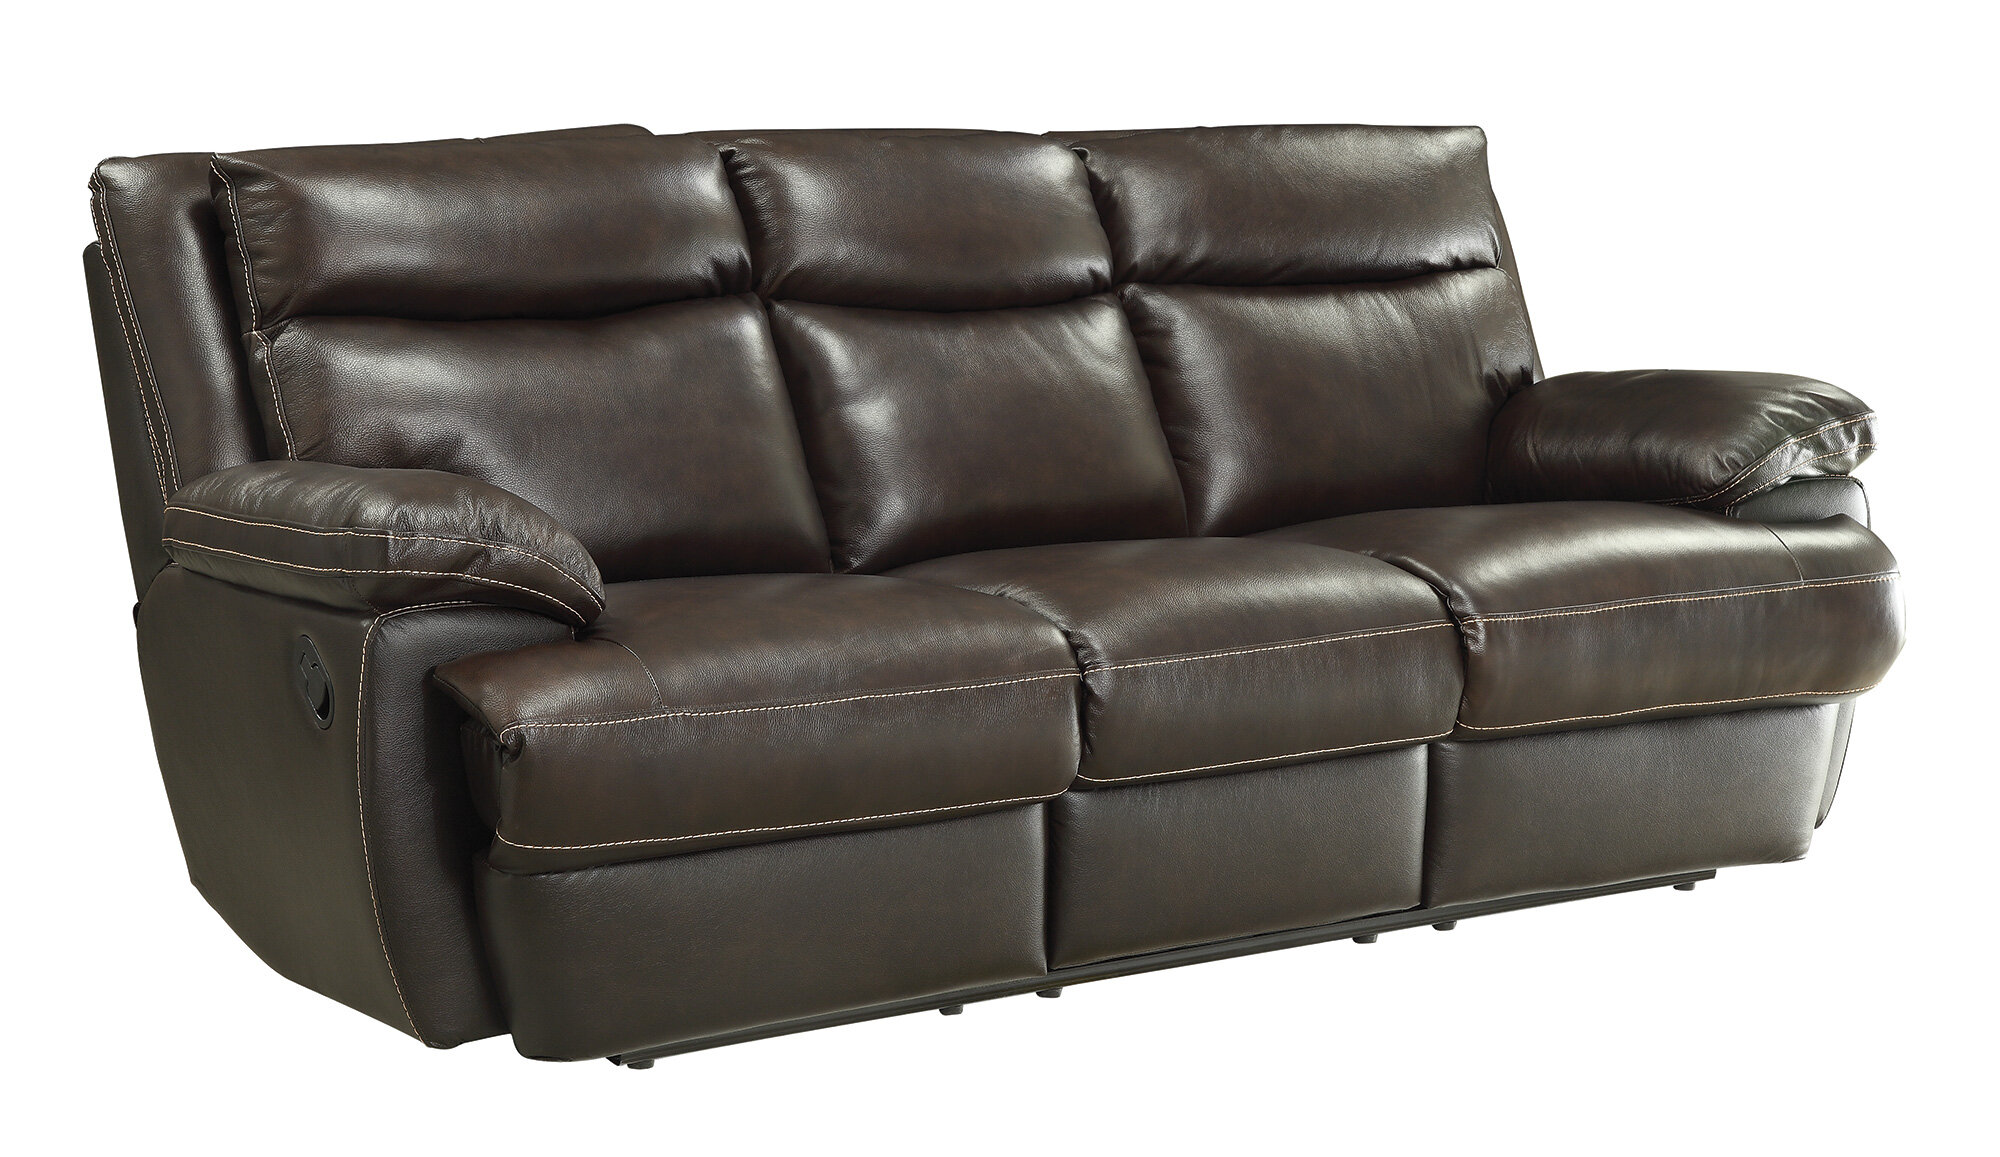 Surprising Hughes Leather Reclining Sofa Ocoug Best Dining Table And Chair Ideas Images Ocougorg